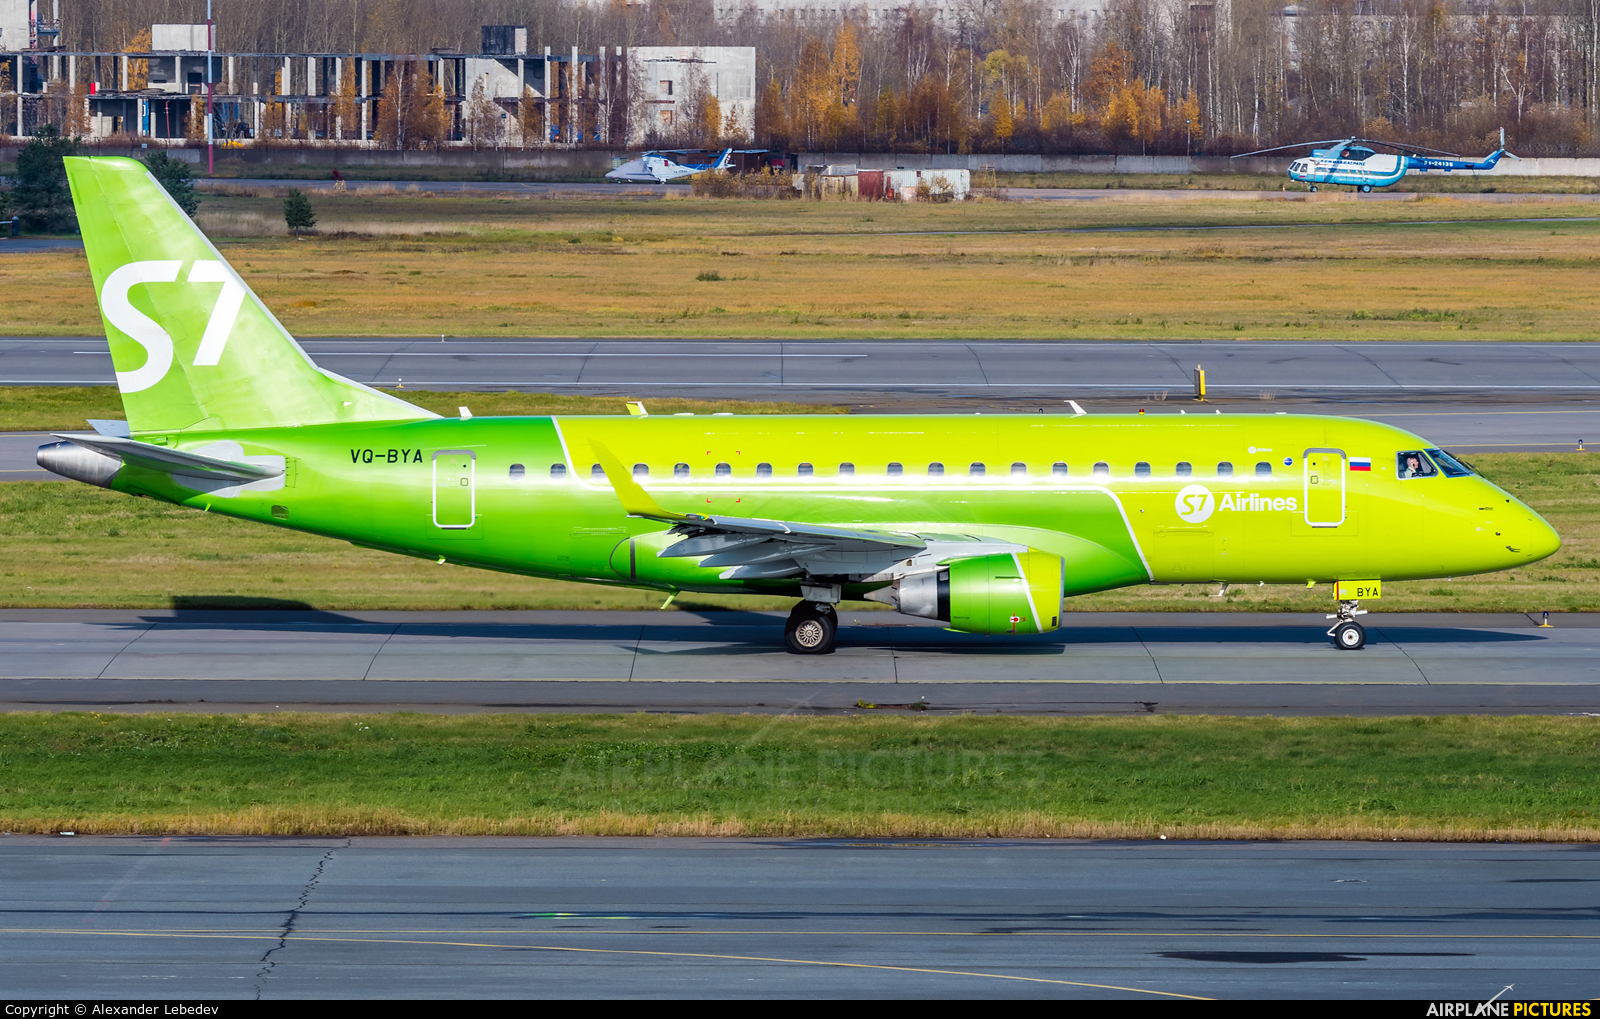 S7 Airlines VQ-BYA aircraft at St. Petersburg - Pulkovo